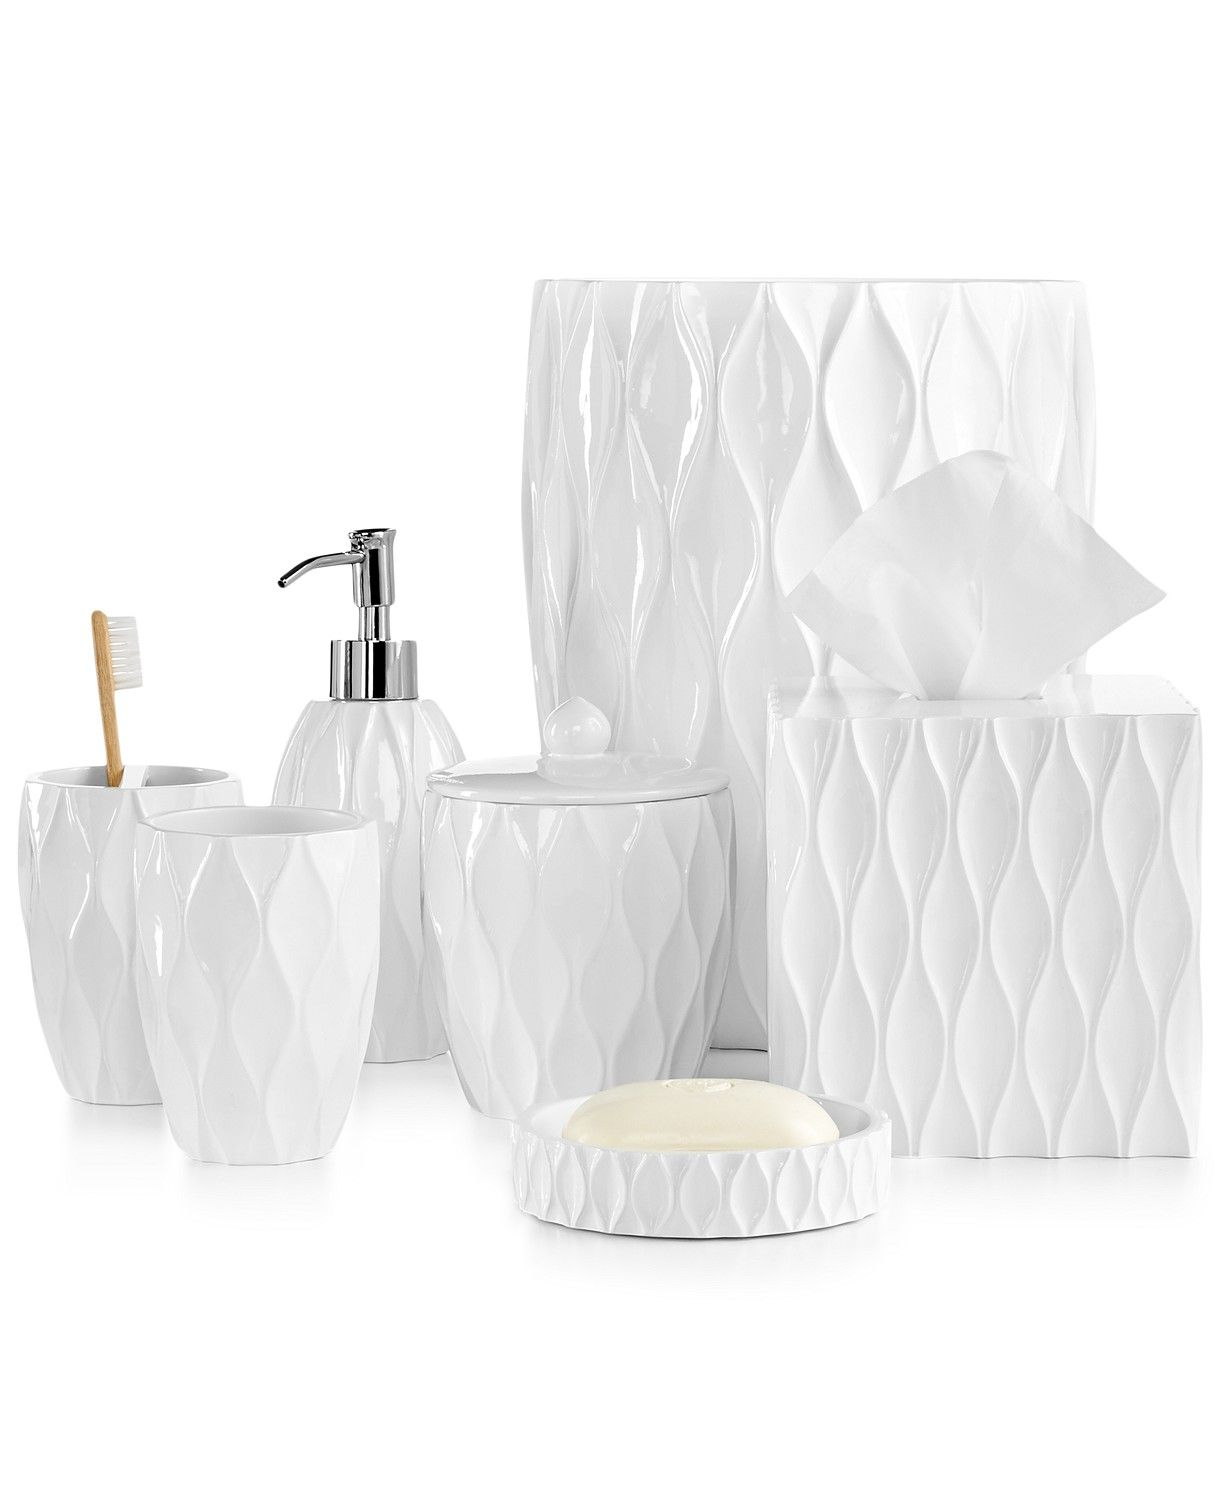 Roselli Trading Company Roselli Trading Wave Bath Accessories